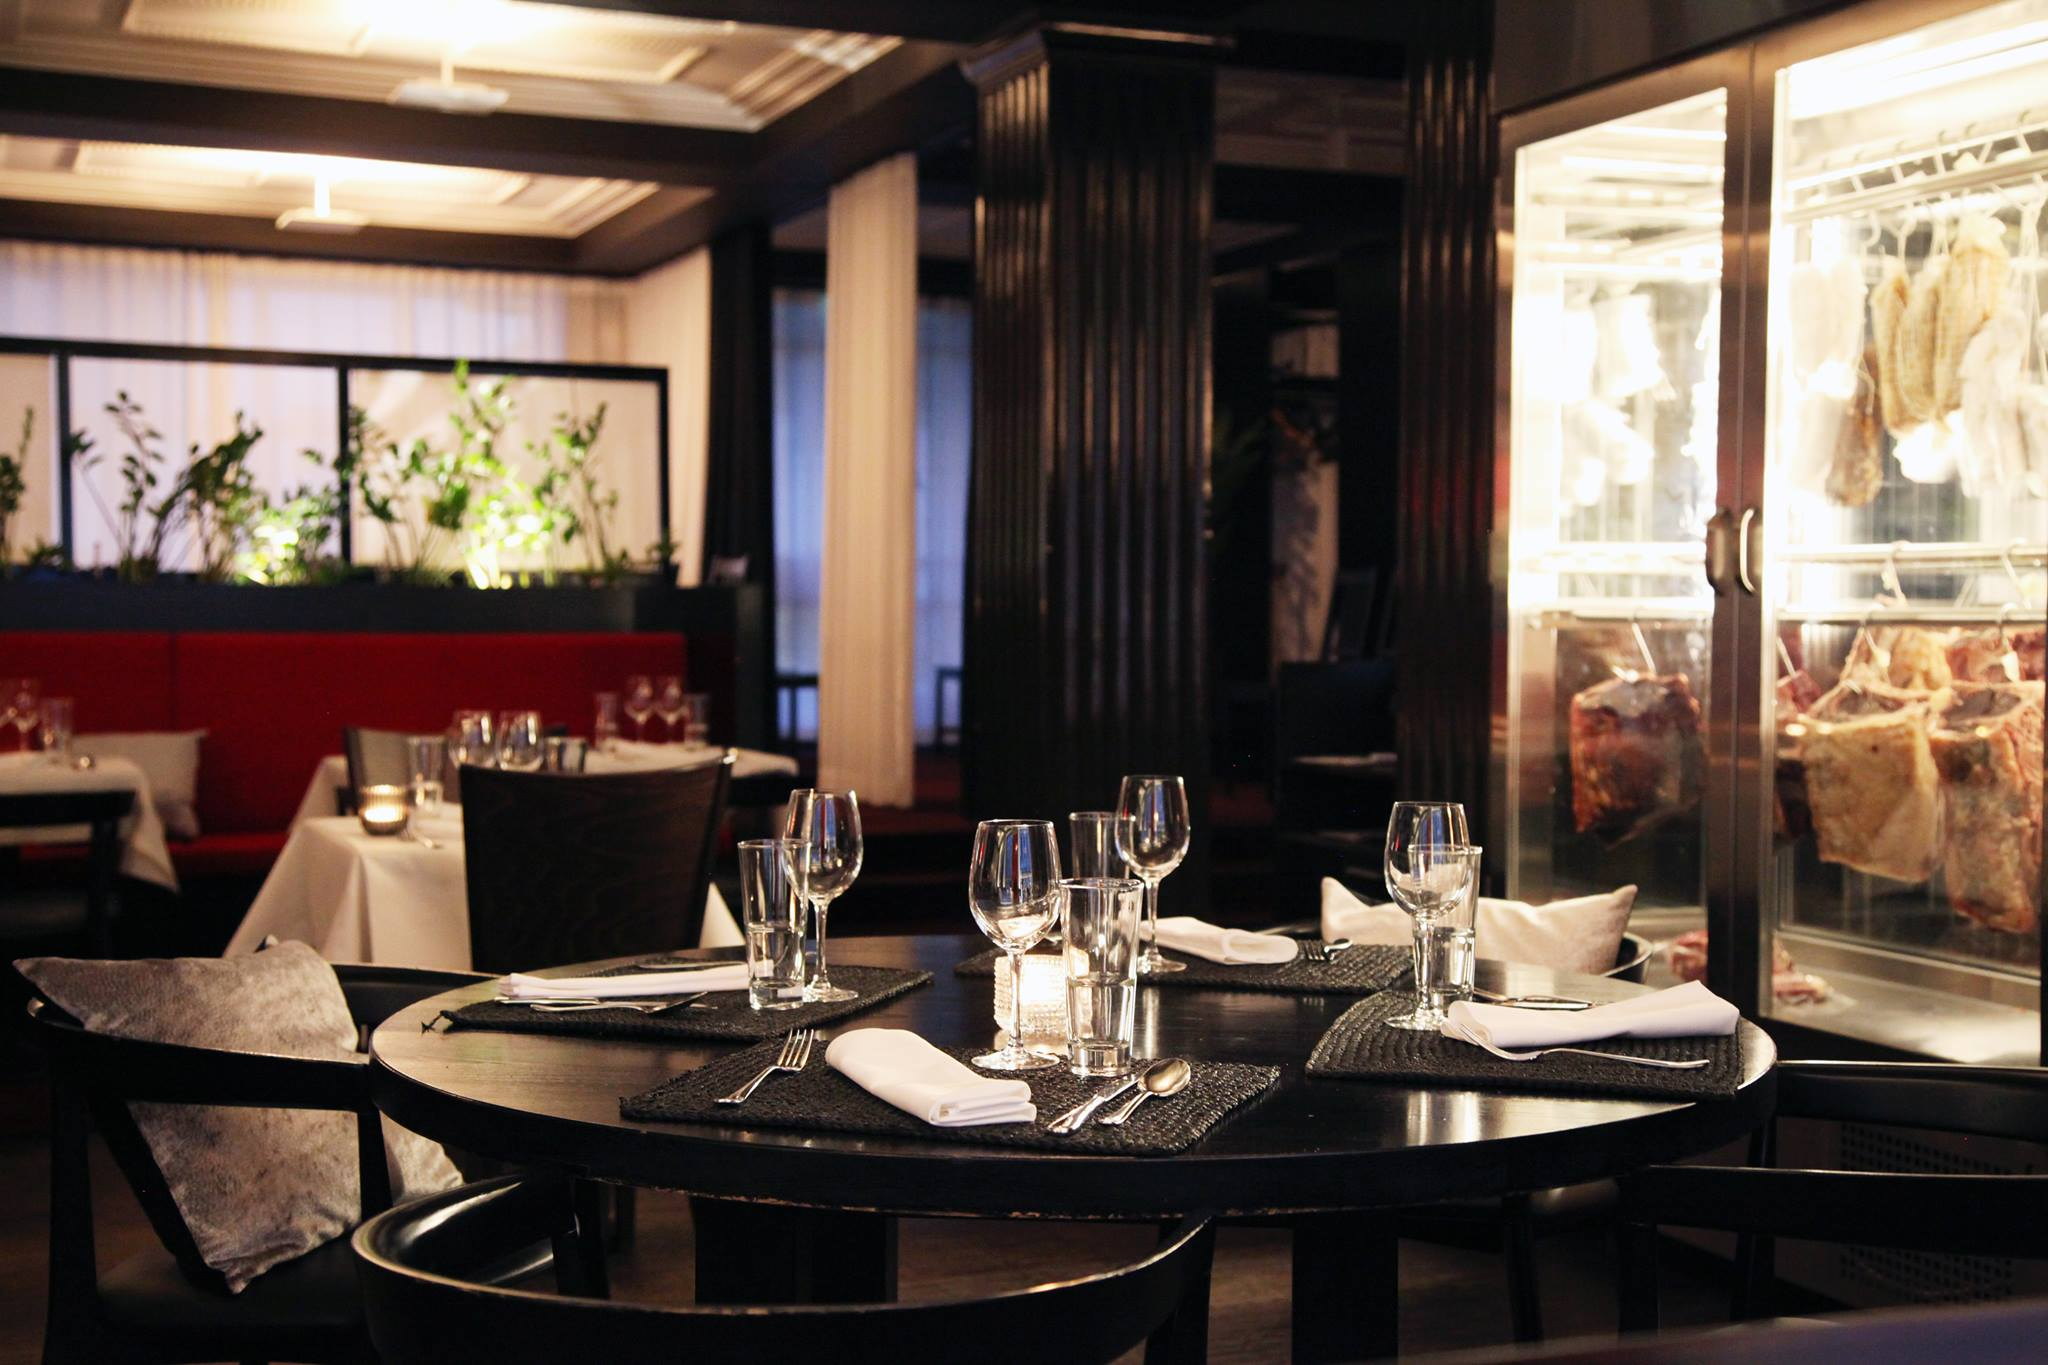 *Picture from restaurant webpage